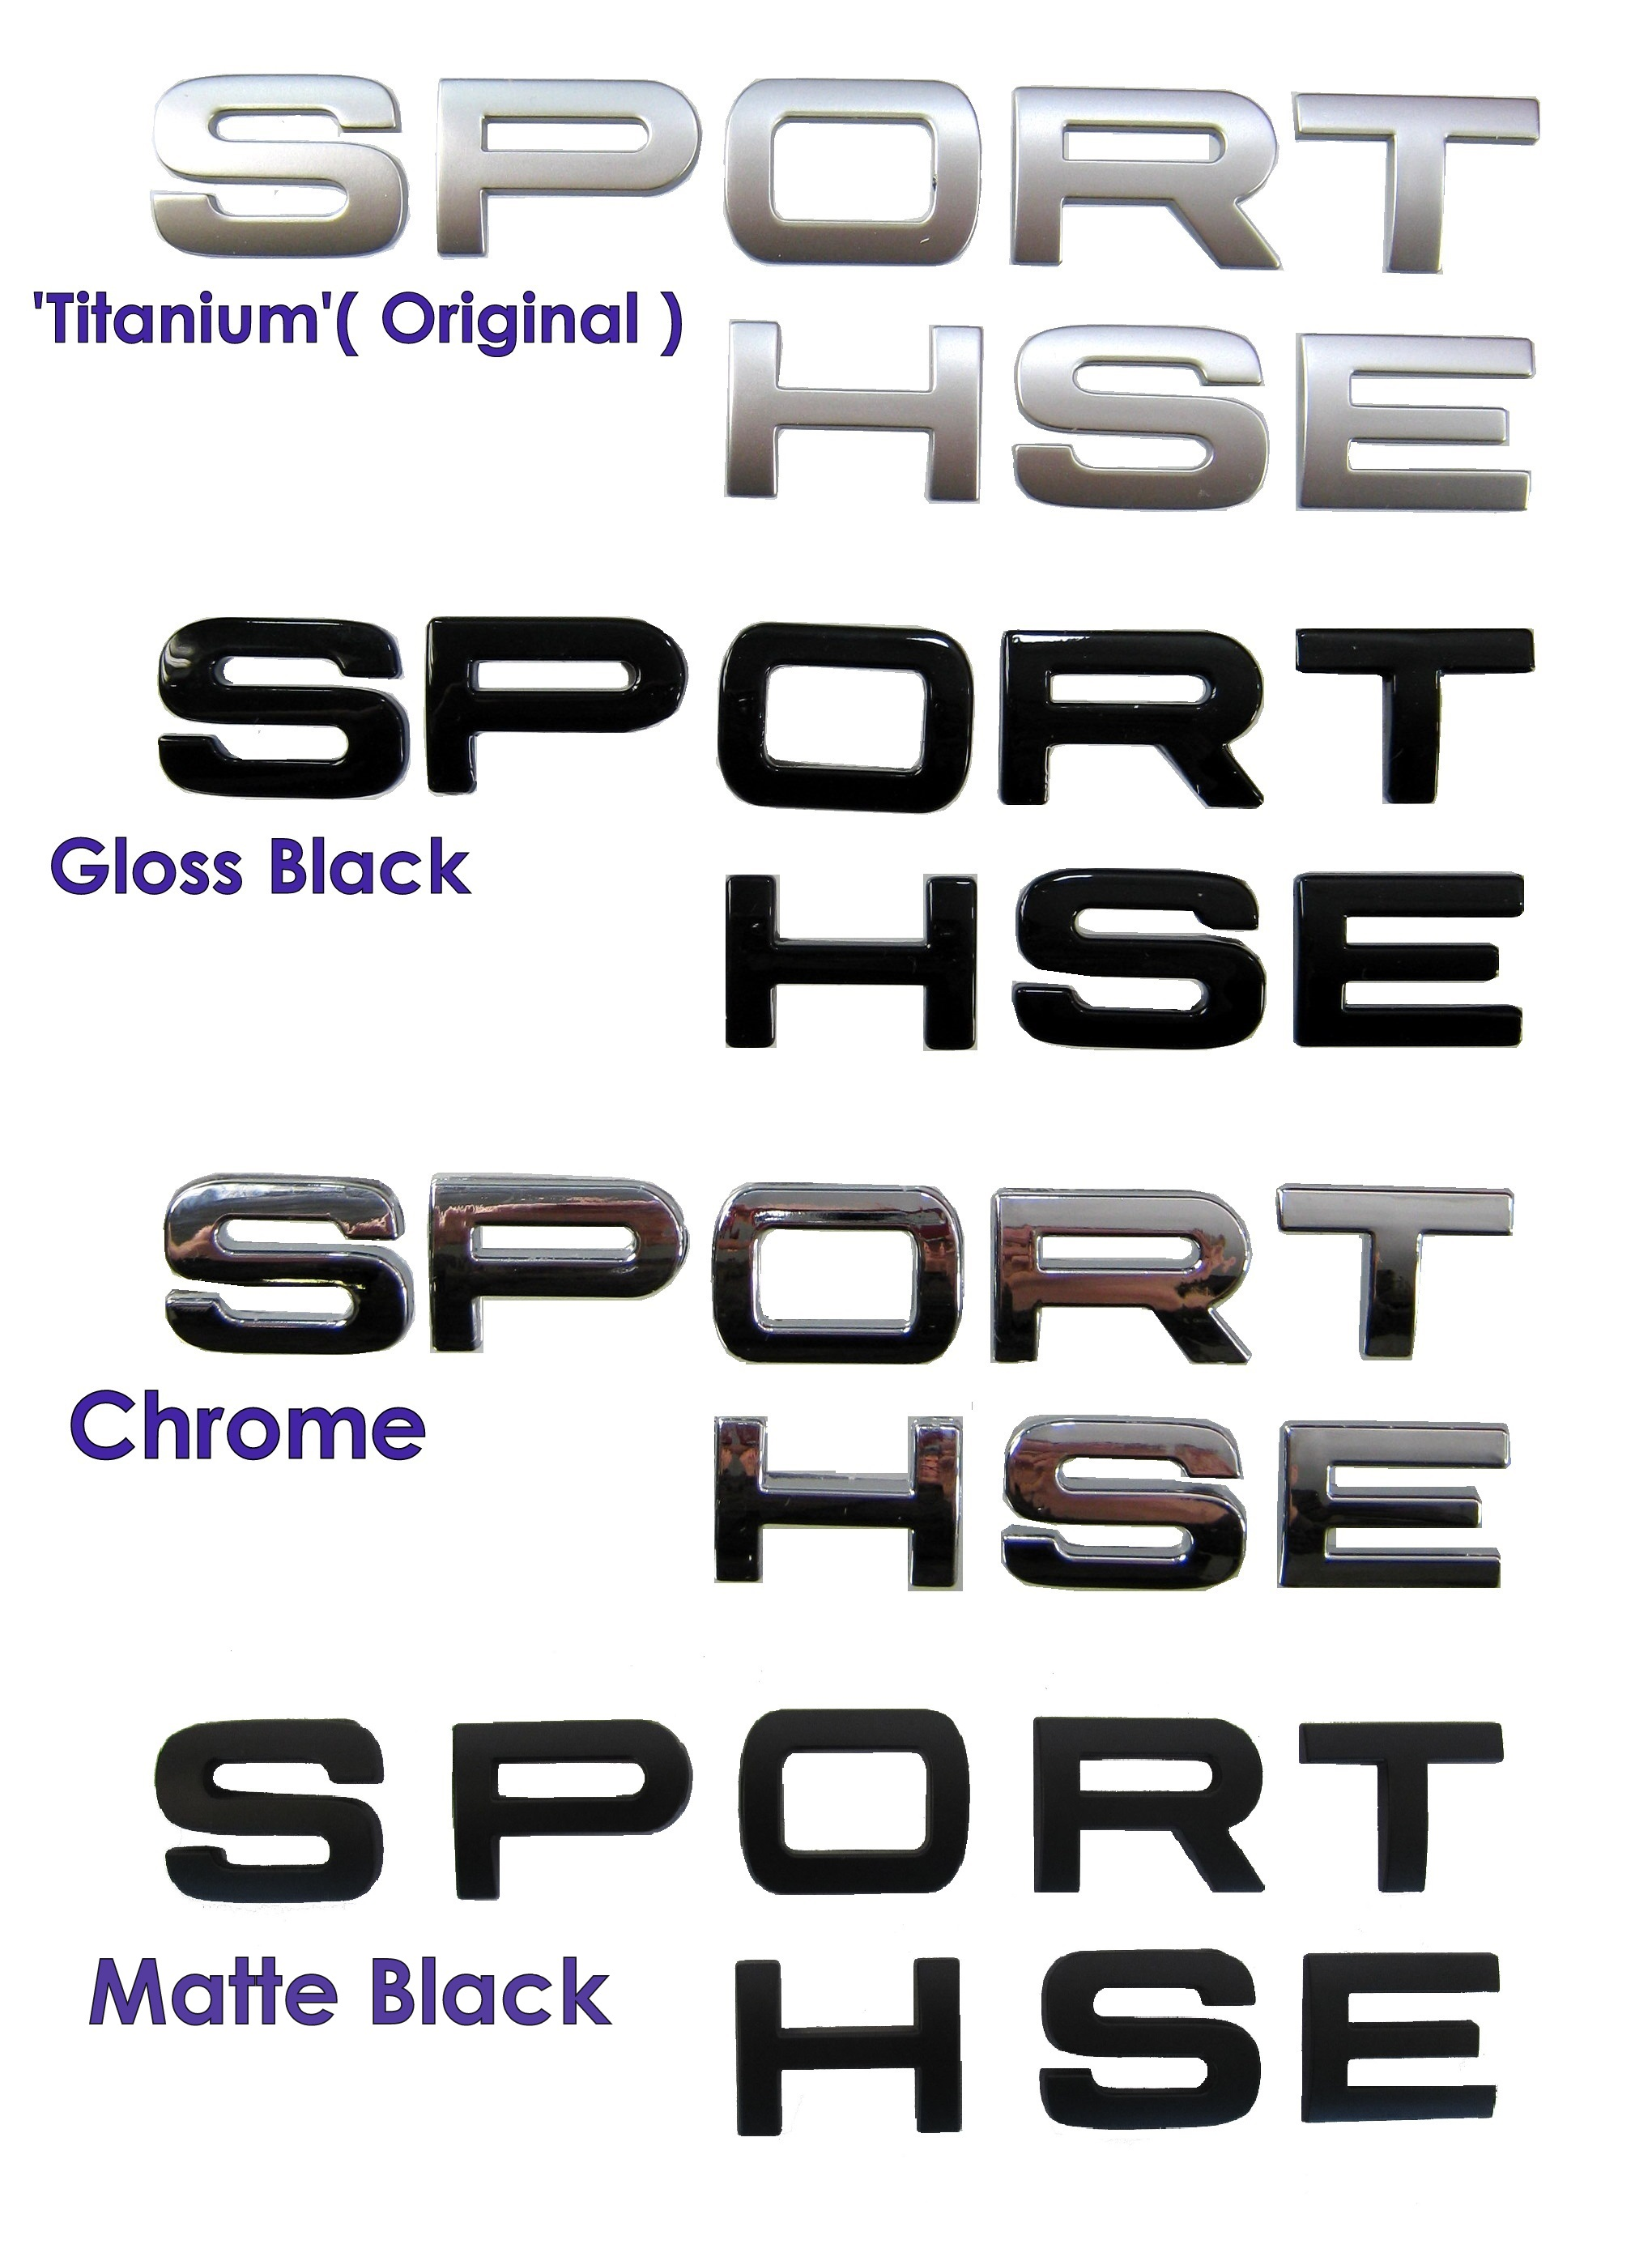 Gloss Black SPORT letters for Range Rover supercharged HST